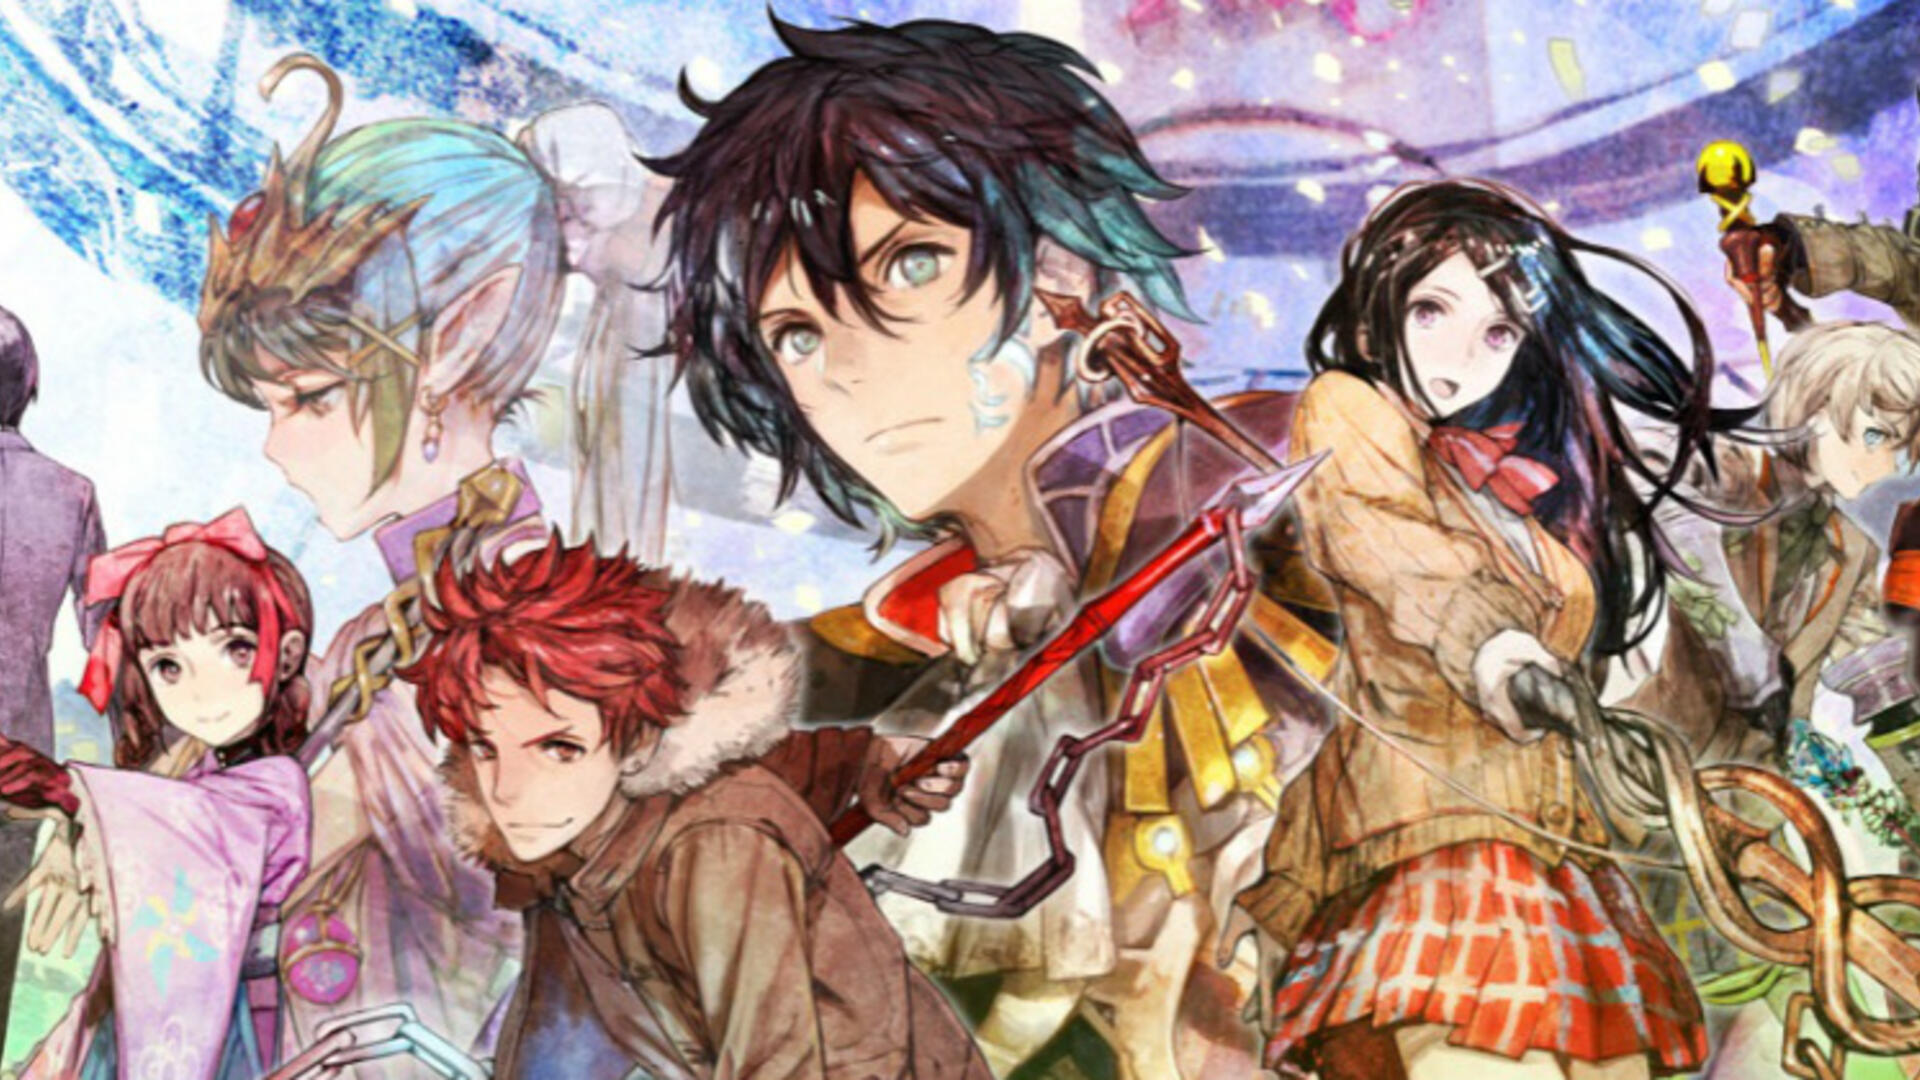 Tokyo Mirage Sessions #FE Review: Music to My Ears [Update: Final Score]